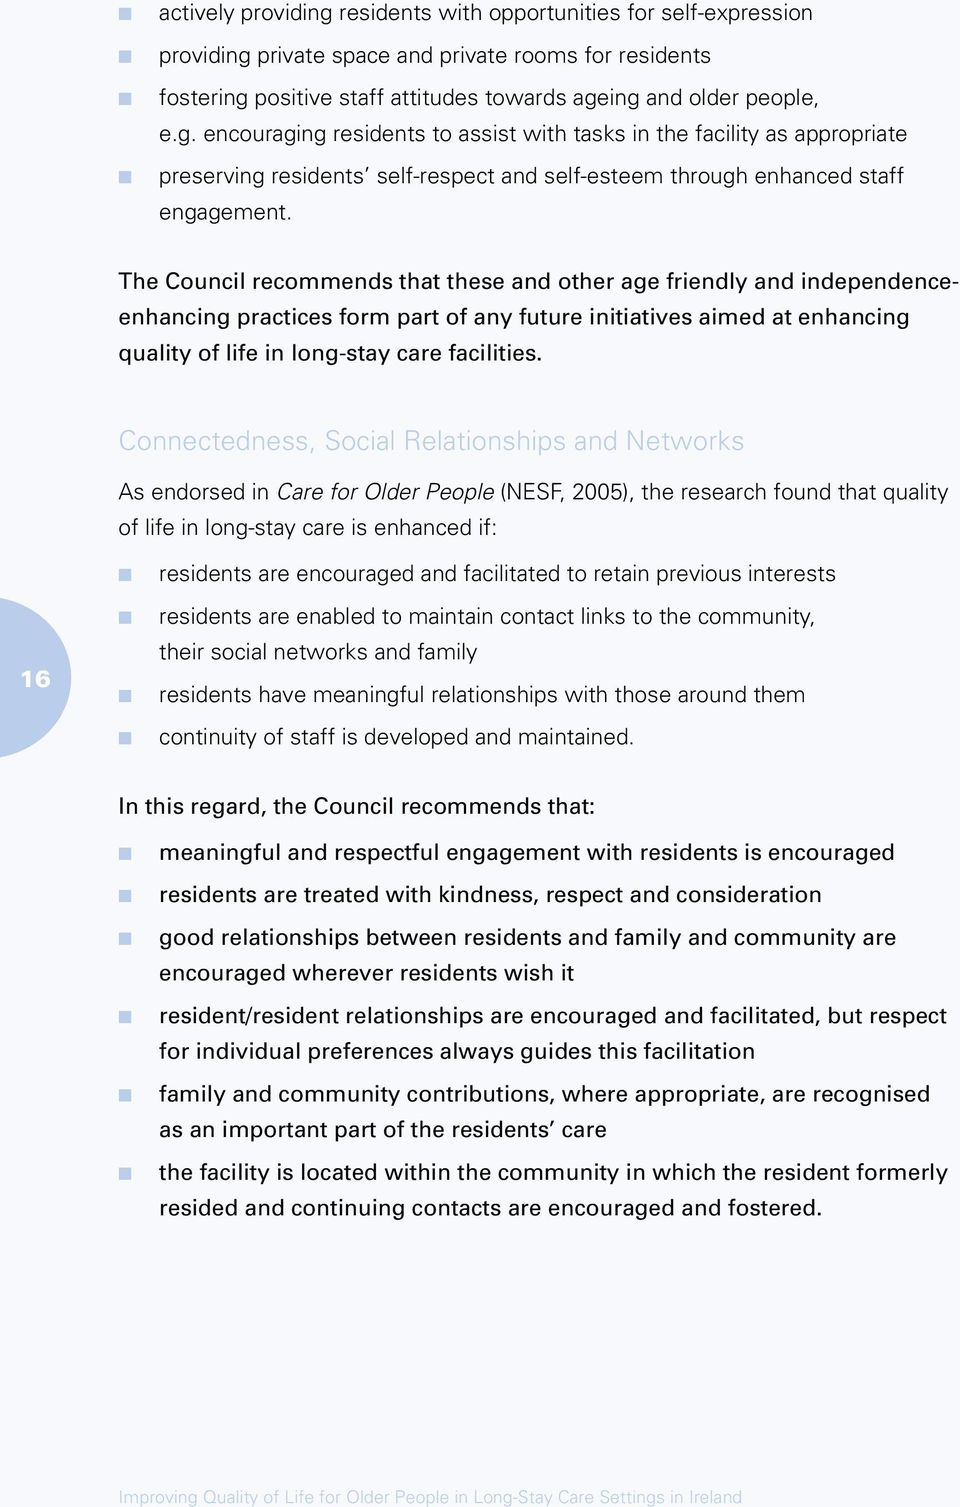 Connectedness, Social Relationships and Networks As endorsed in Care for Older People (NESF, 2005), the research found that quality of life in long-stay care is enhanced if: 16 residents are